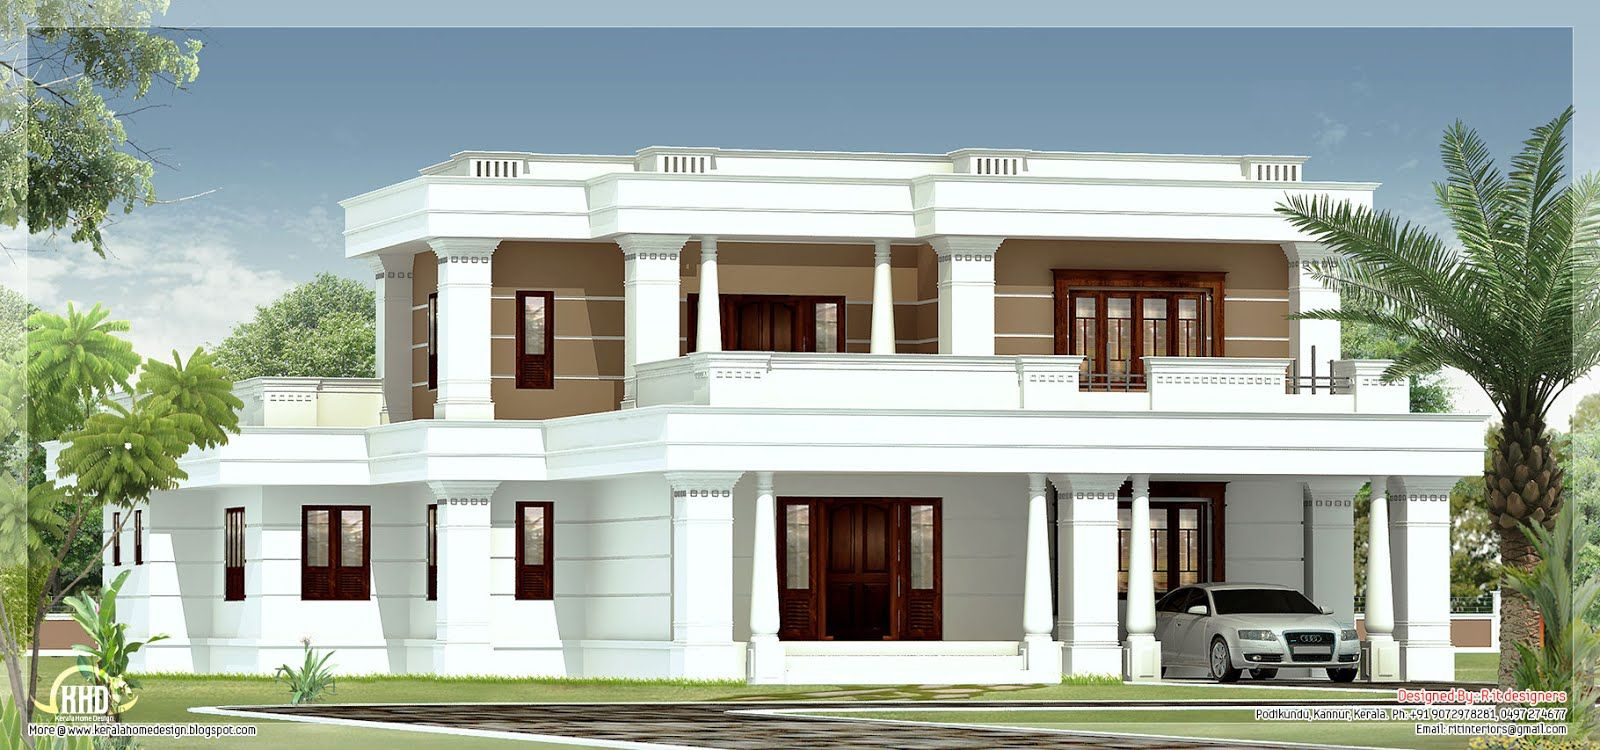 Flat Roof Homes Designs November  Kerala Home Design And - Luxury home designs and floor plans